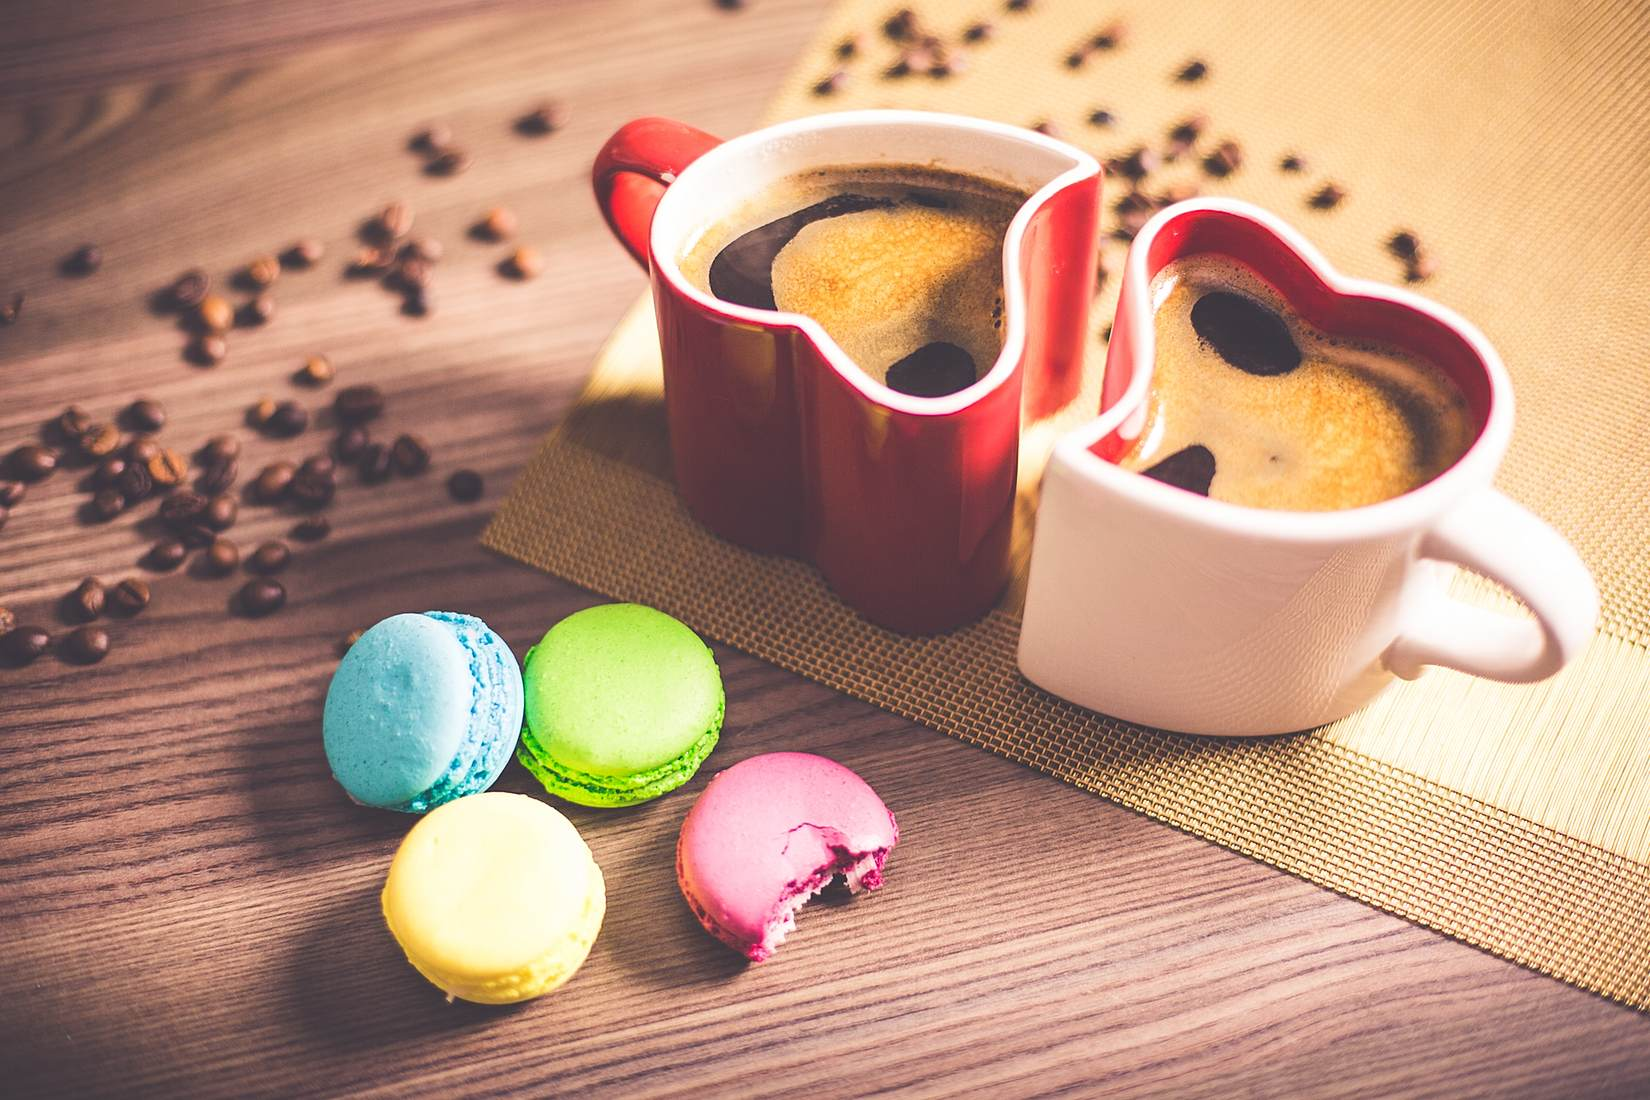 coffee-in-heart-cups-and-sweet-yummy-macarons